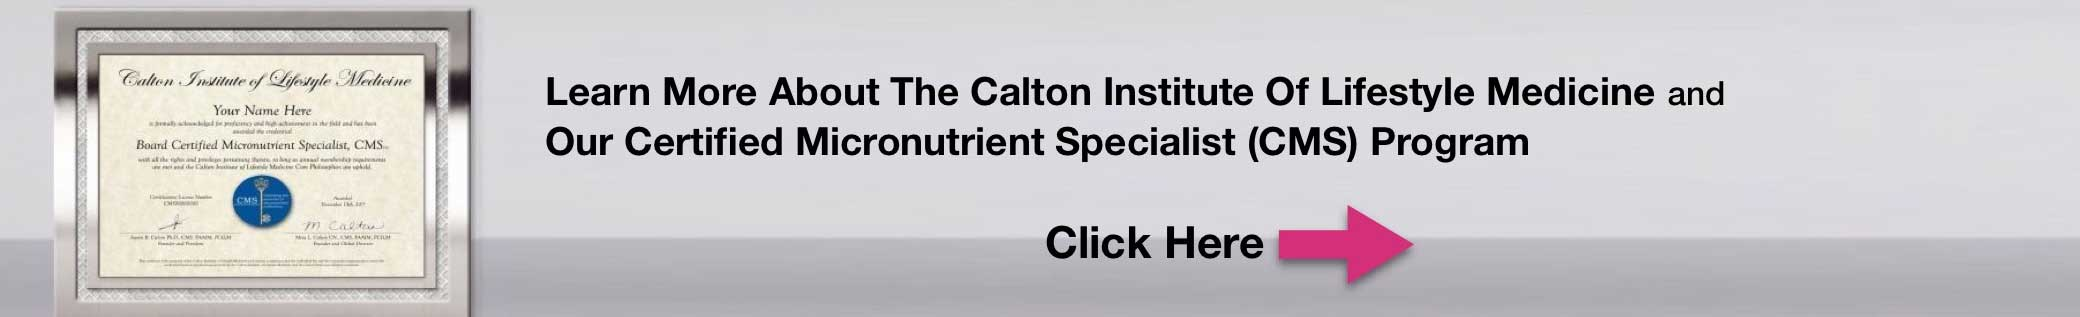 Learn more about the Calton Institute Of Lifestyle Medicine and Our Certified Micronutrient Specialist CMS Program